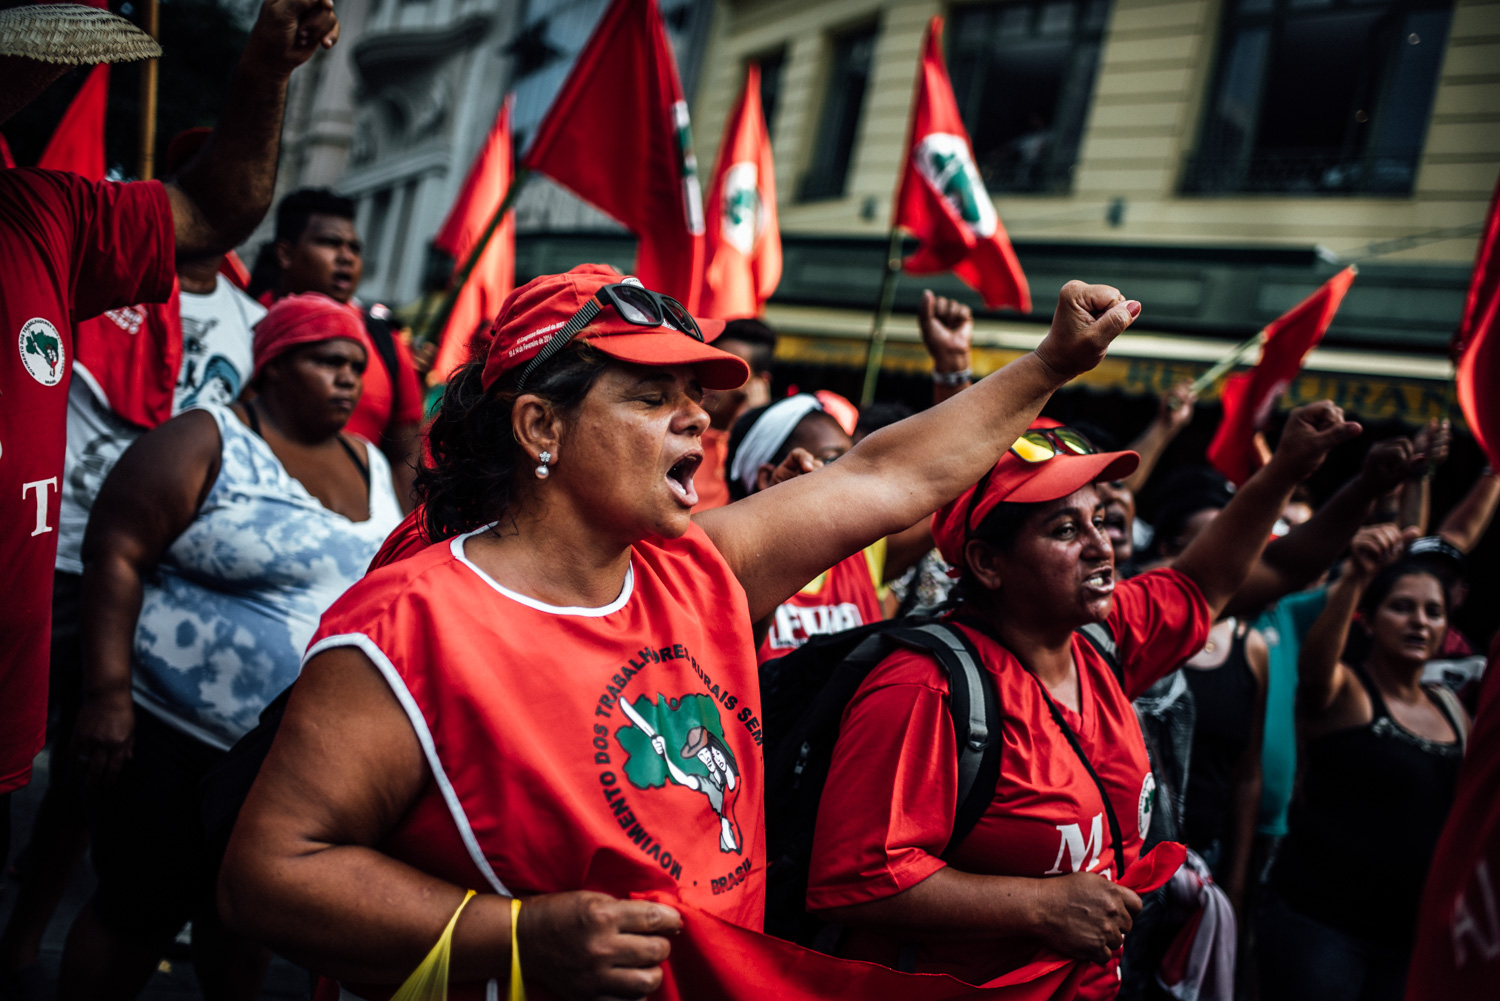 Landless workers rally in Rio de Janeiro in support of Petrobras, the Brazilian state oil company. In recent weeks, the company has been embroiled in one of the largest corruption scandals in the nations history. Rio de Janeiro, Brazil, 03-13-2015.